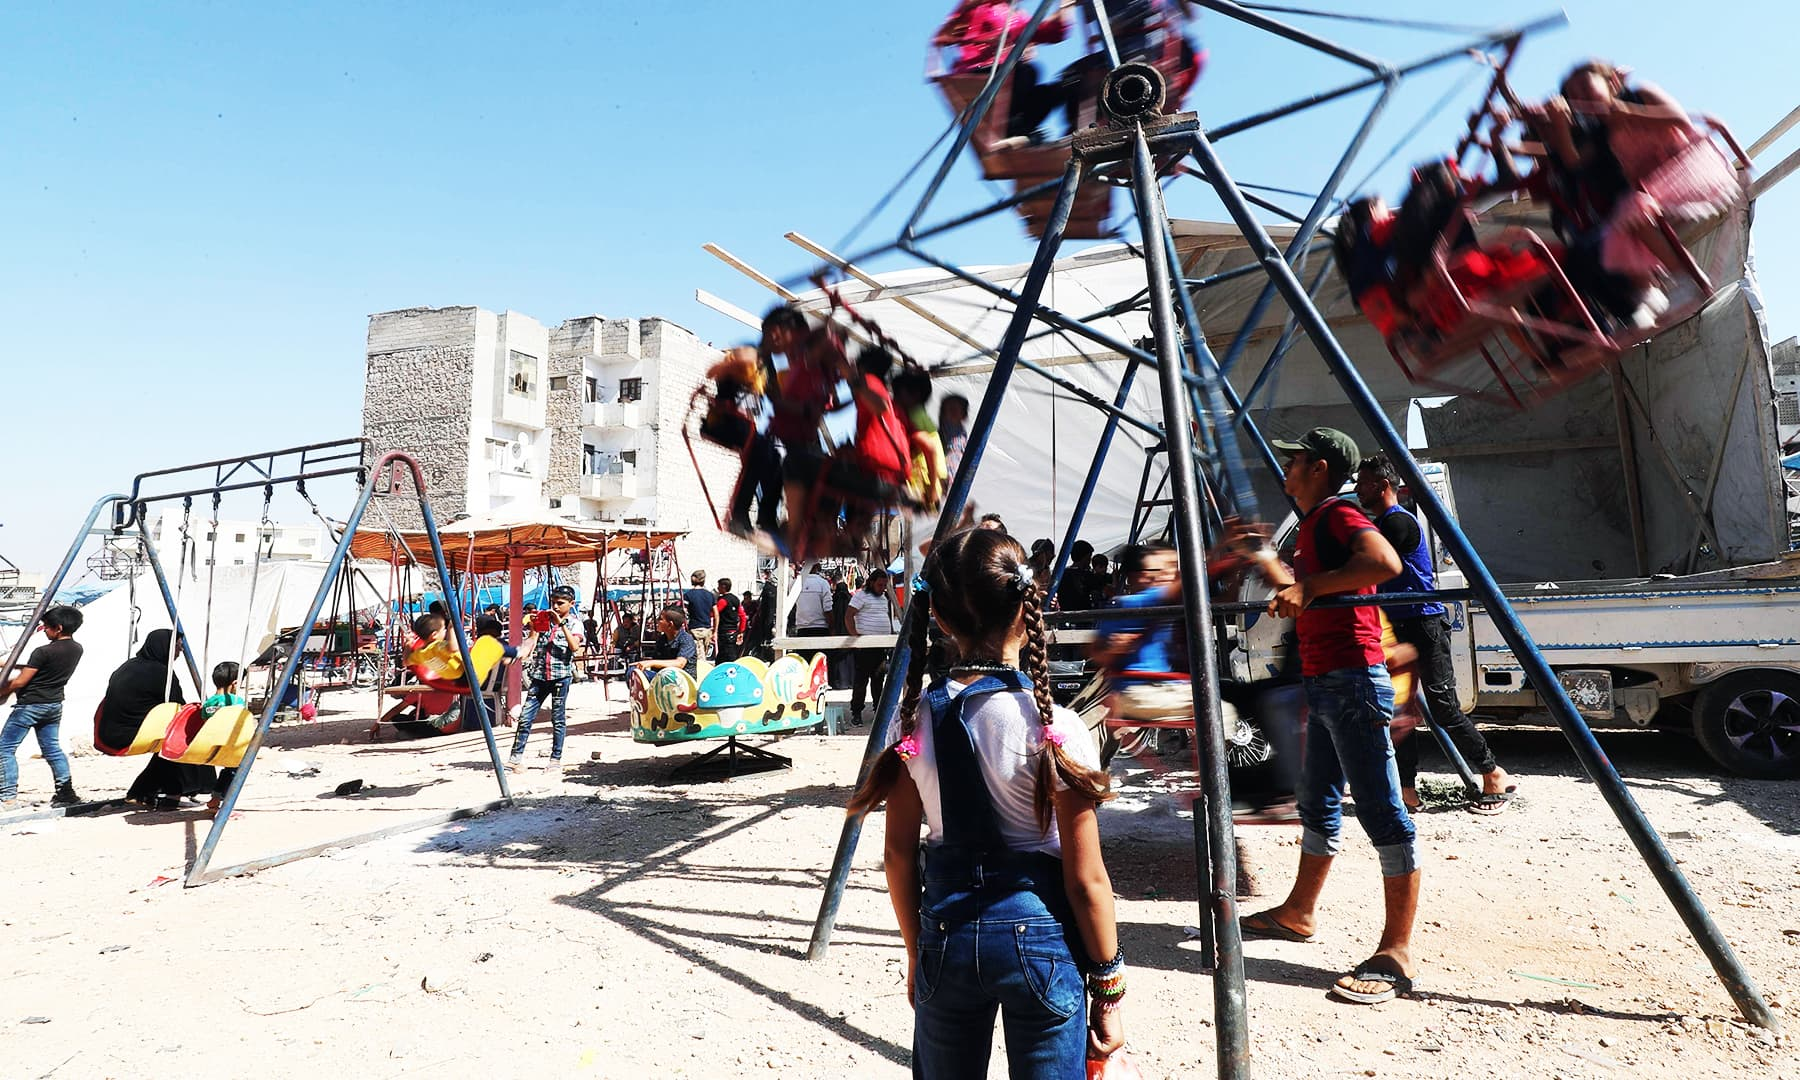 Syrian children sit in rides on the first day of Eidul Azha in the rebel-held city of Idlib in northwestern Syria. — AFP